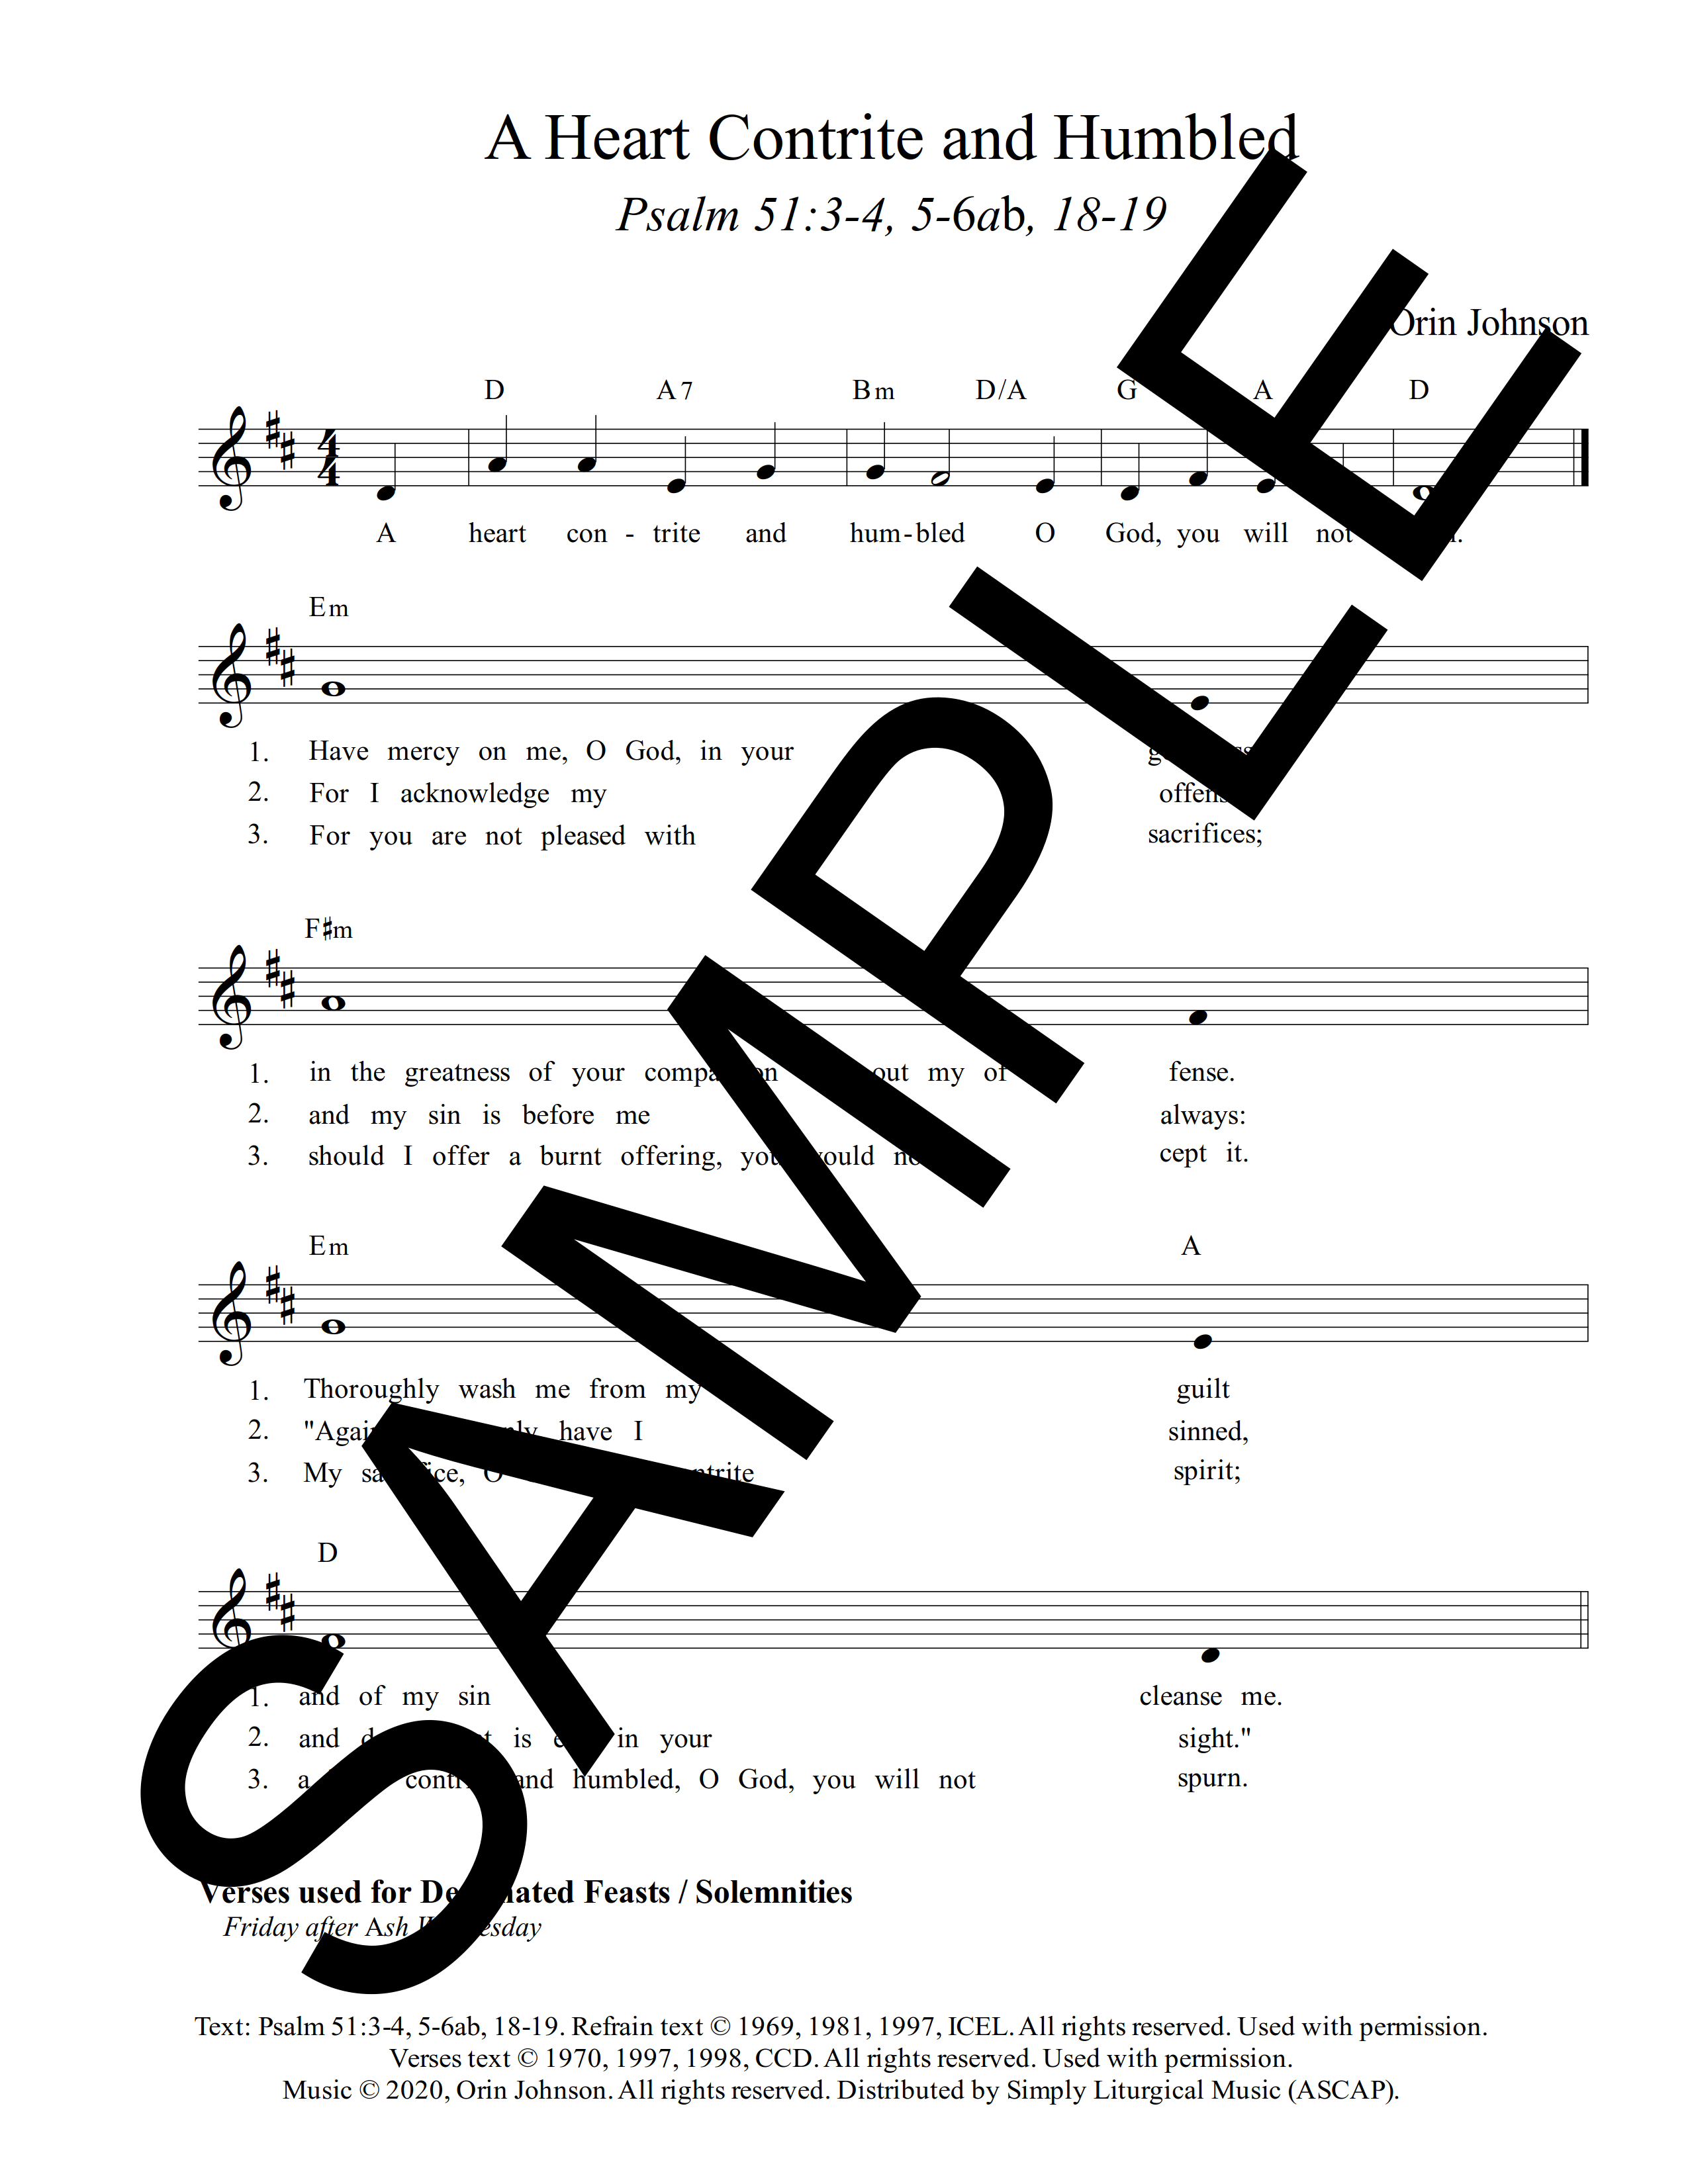 Psalm 51 A Heart Contrite and Humbled Johnson Sample Lead Sheet 1 png